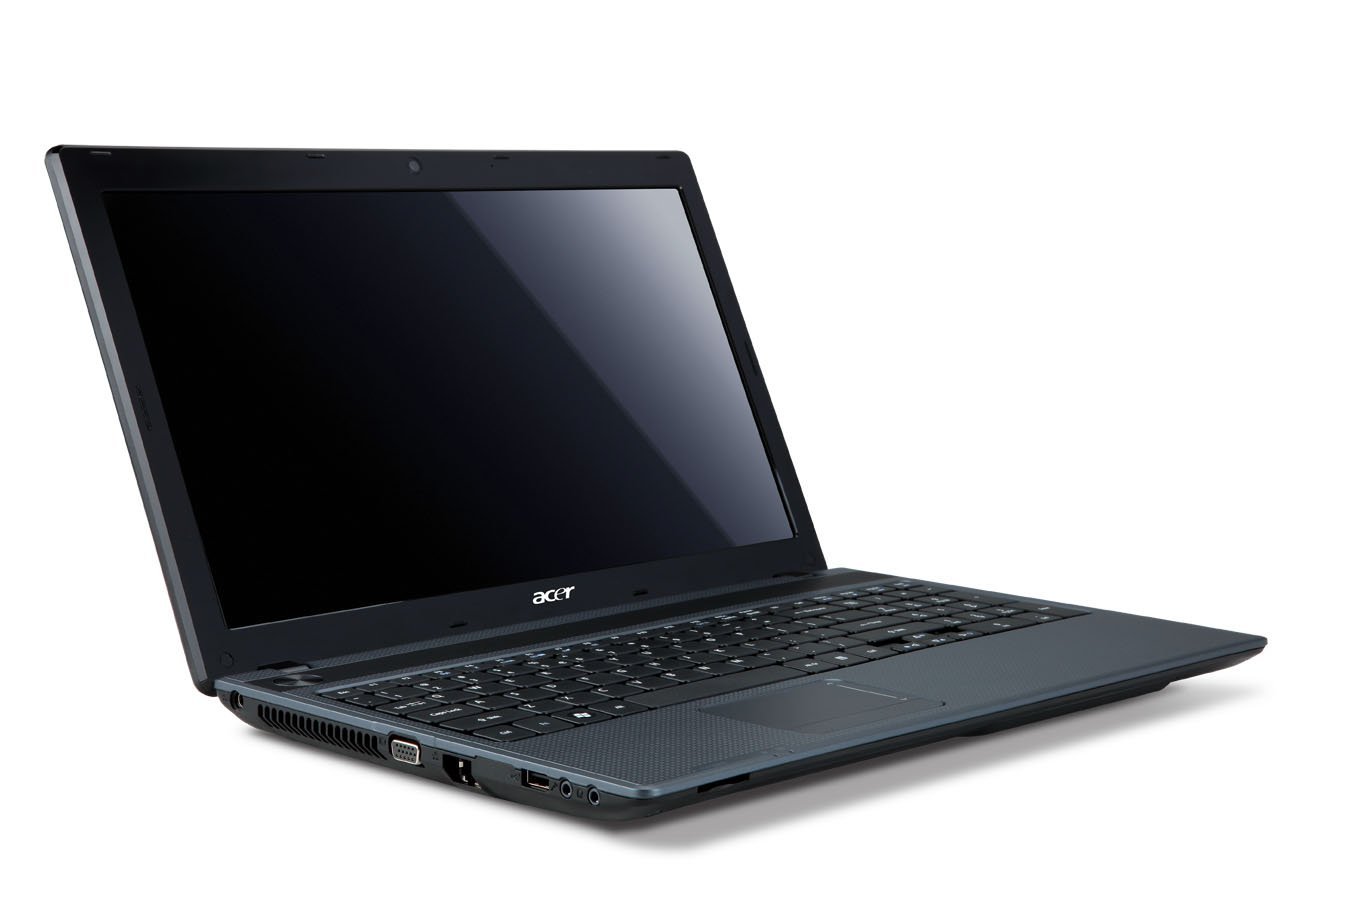 Acer Aspire 5733 15.6 inch Laptop (Intel Core i3-370M Processor, RAM 4GB,  HDD 500GB, DVD-Super Multi DL Drive, Windows 7 Home Premium 64-bit):  Amazon.co.uk: ...